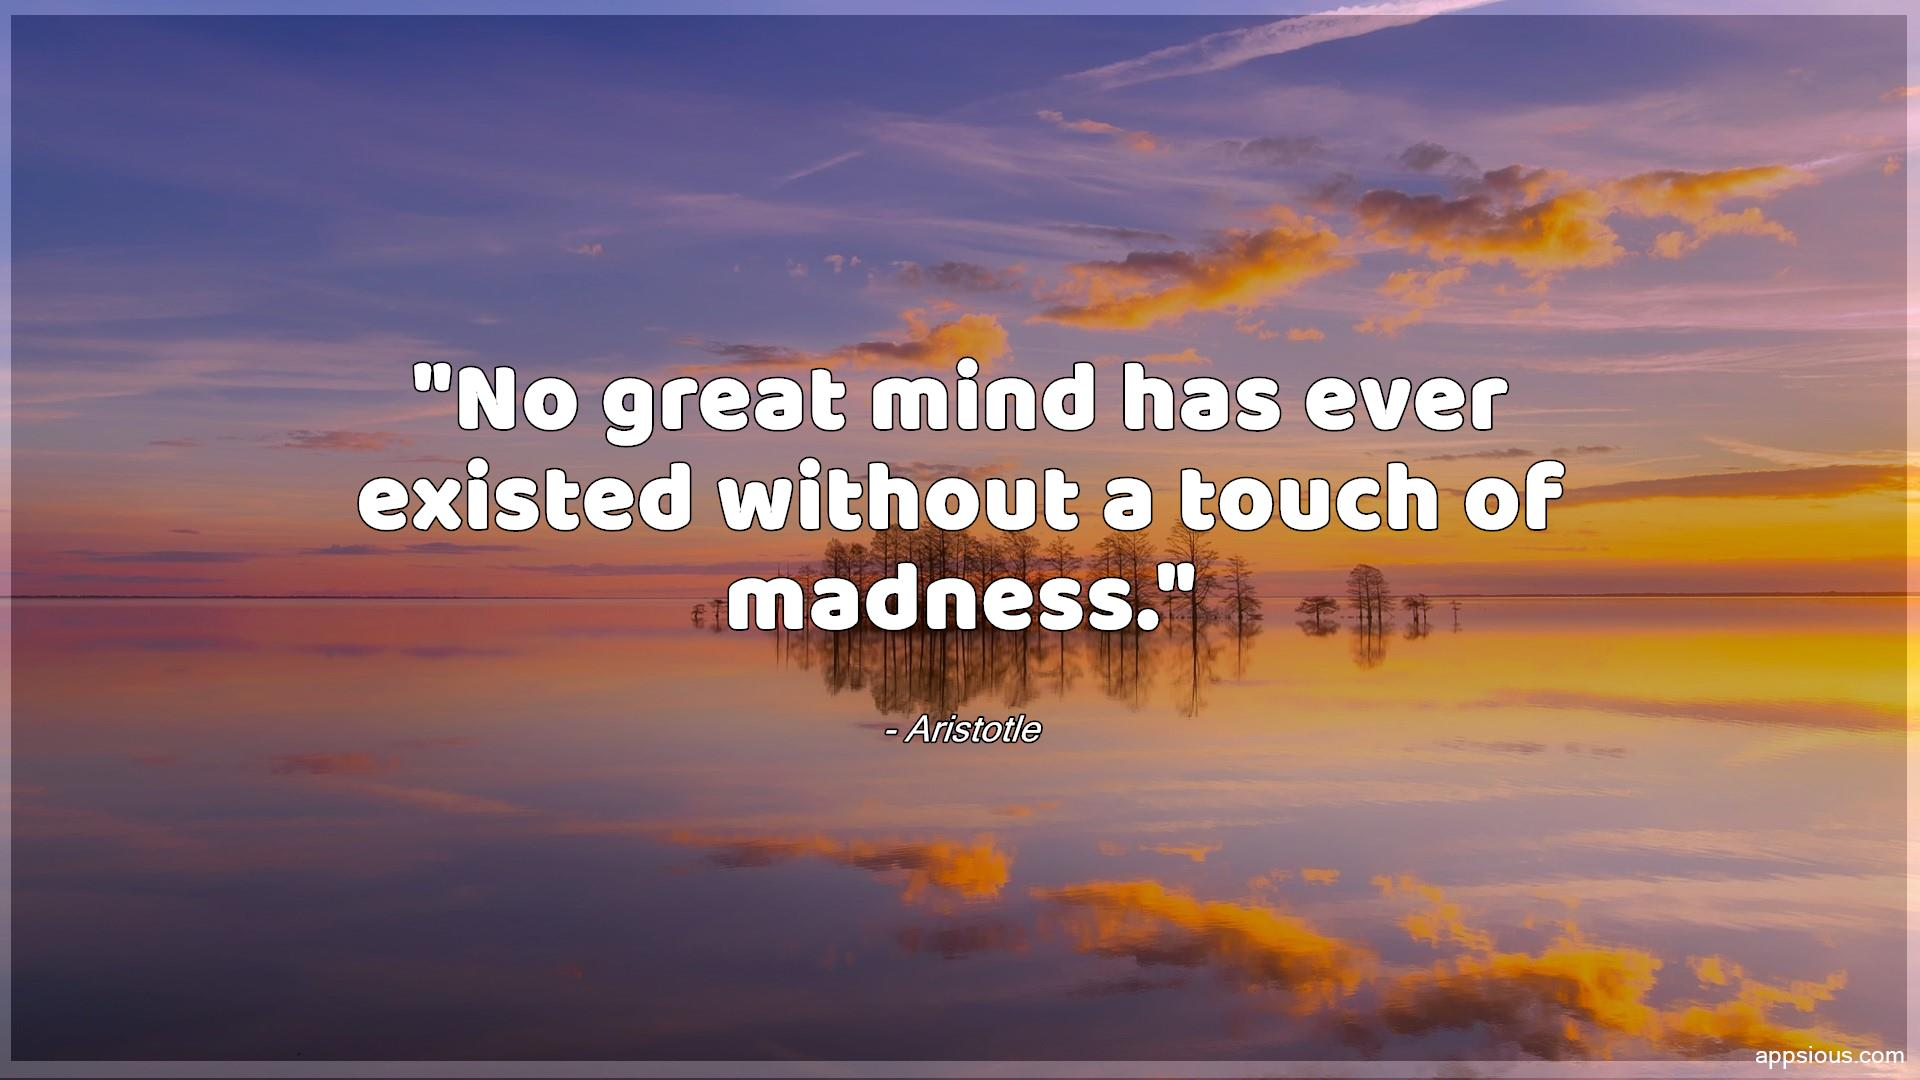 No great mind has ever existed without a touch of madness.